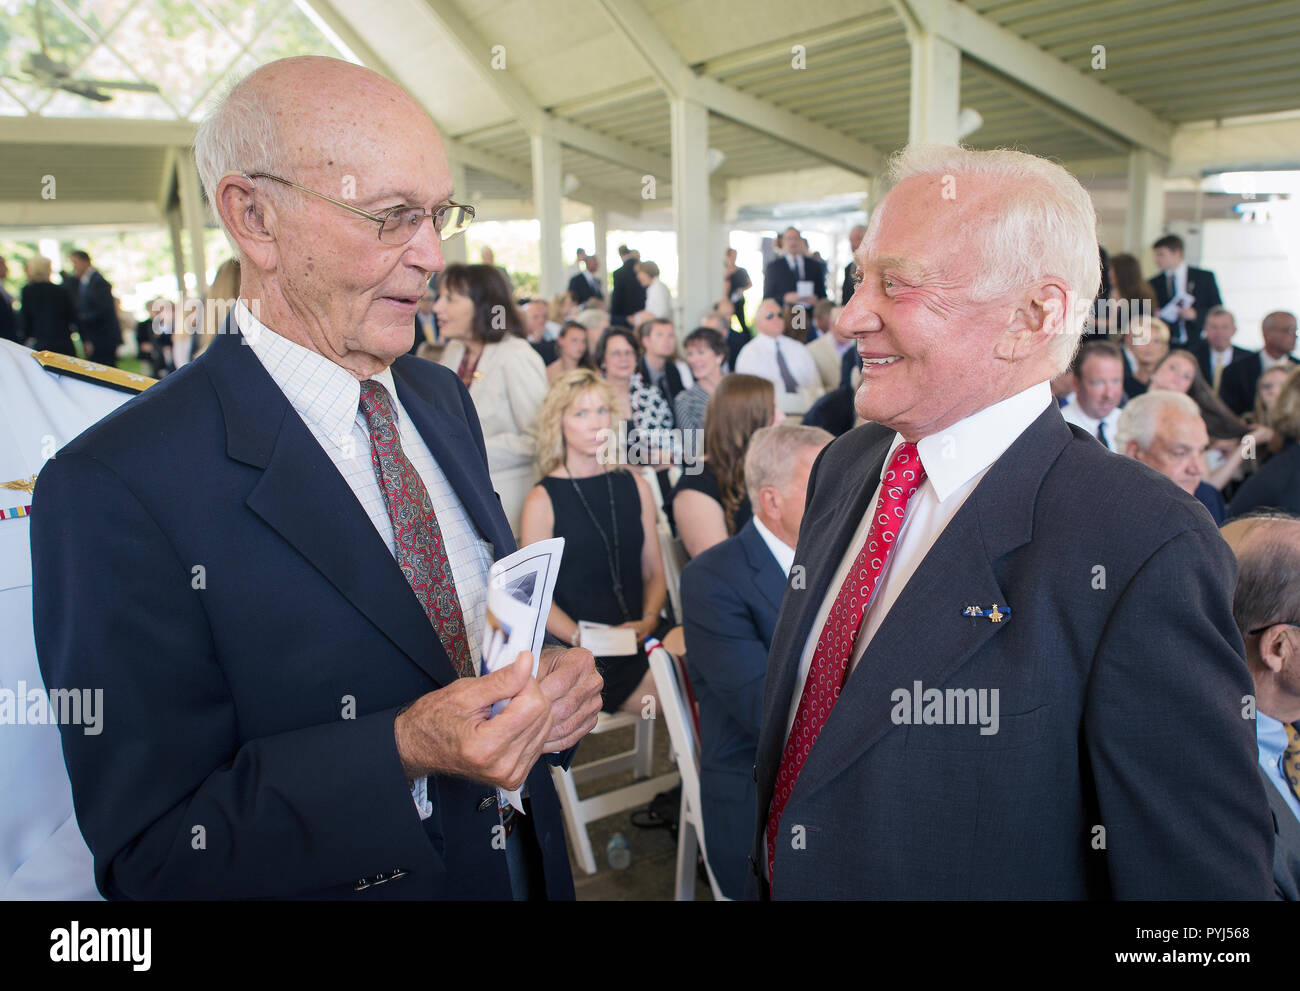 Apollo 11 Astronauts Michael Collins, left, and Buzz Aldrin talk at a private memorial service celebrating the life of Neil Armstrong, Aug. 31, 2012, at the Camargo Club in Cincinnati.  (NASA/Bill Ingalls) - Stock Image